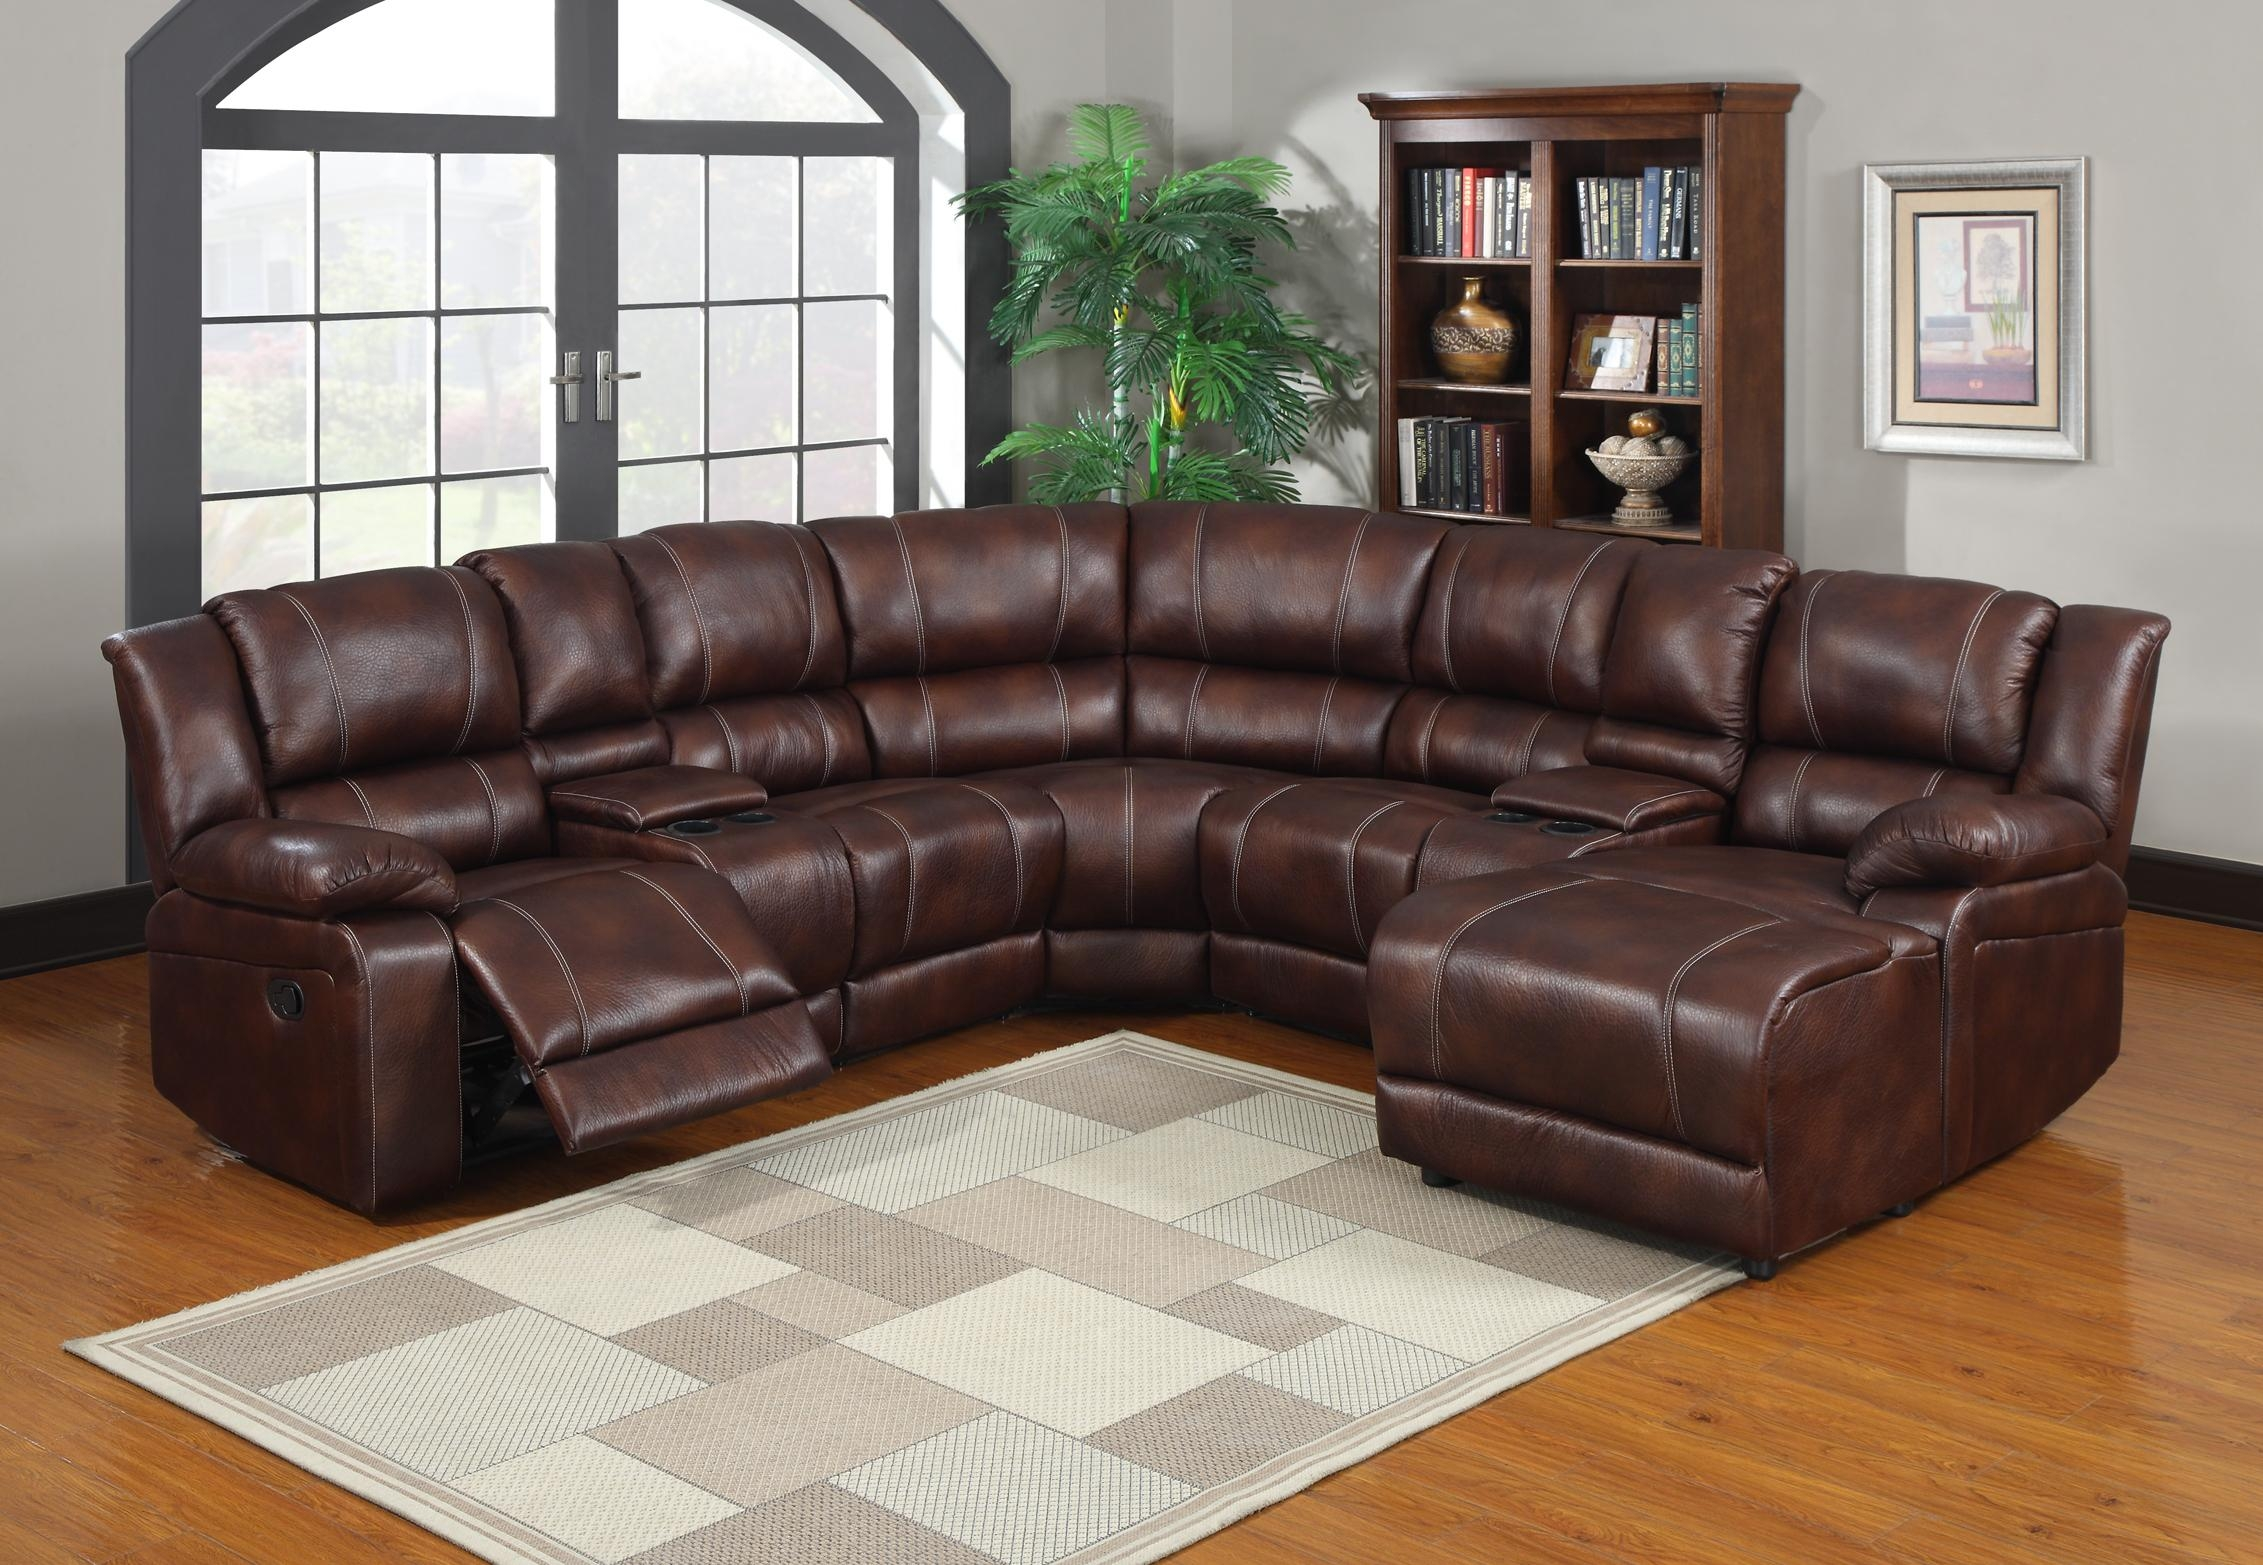 Furniture Reclining Sectional Sofas With Cup Holders | Newmediahub Intended For Sofas With Cup Holders (View 13 of 20)